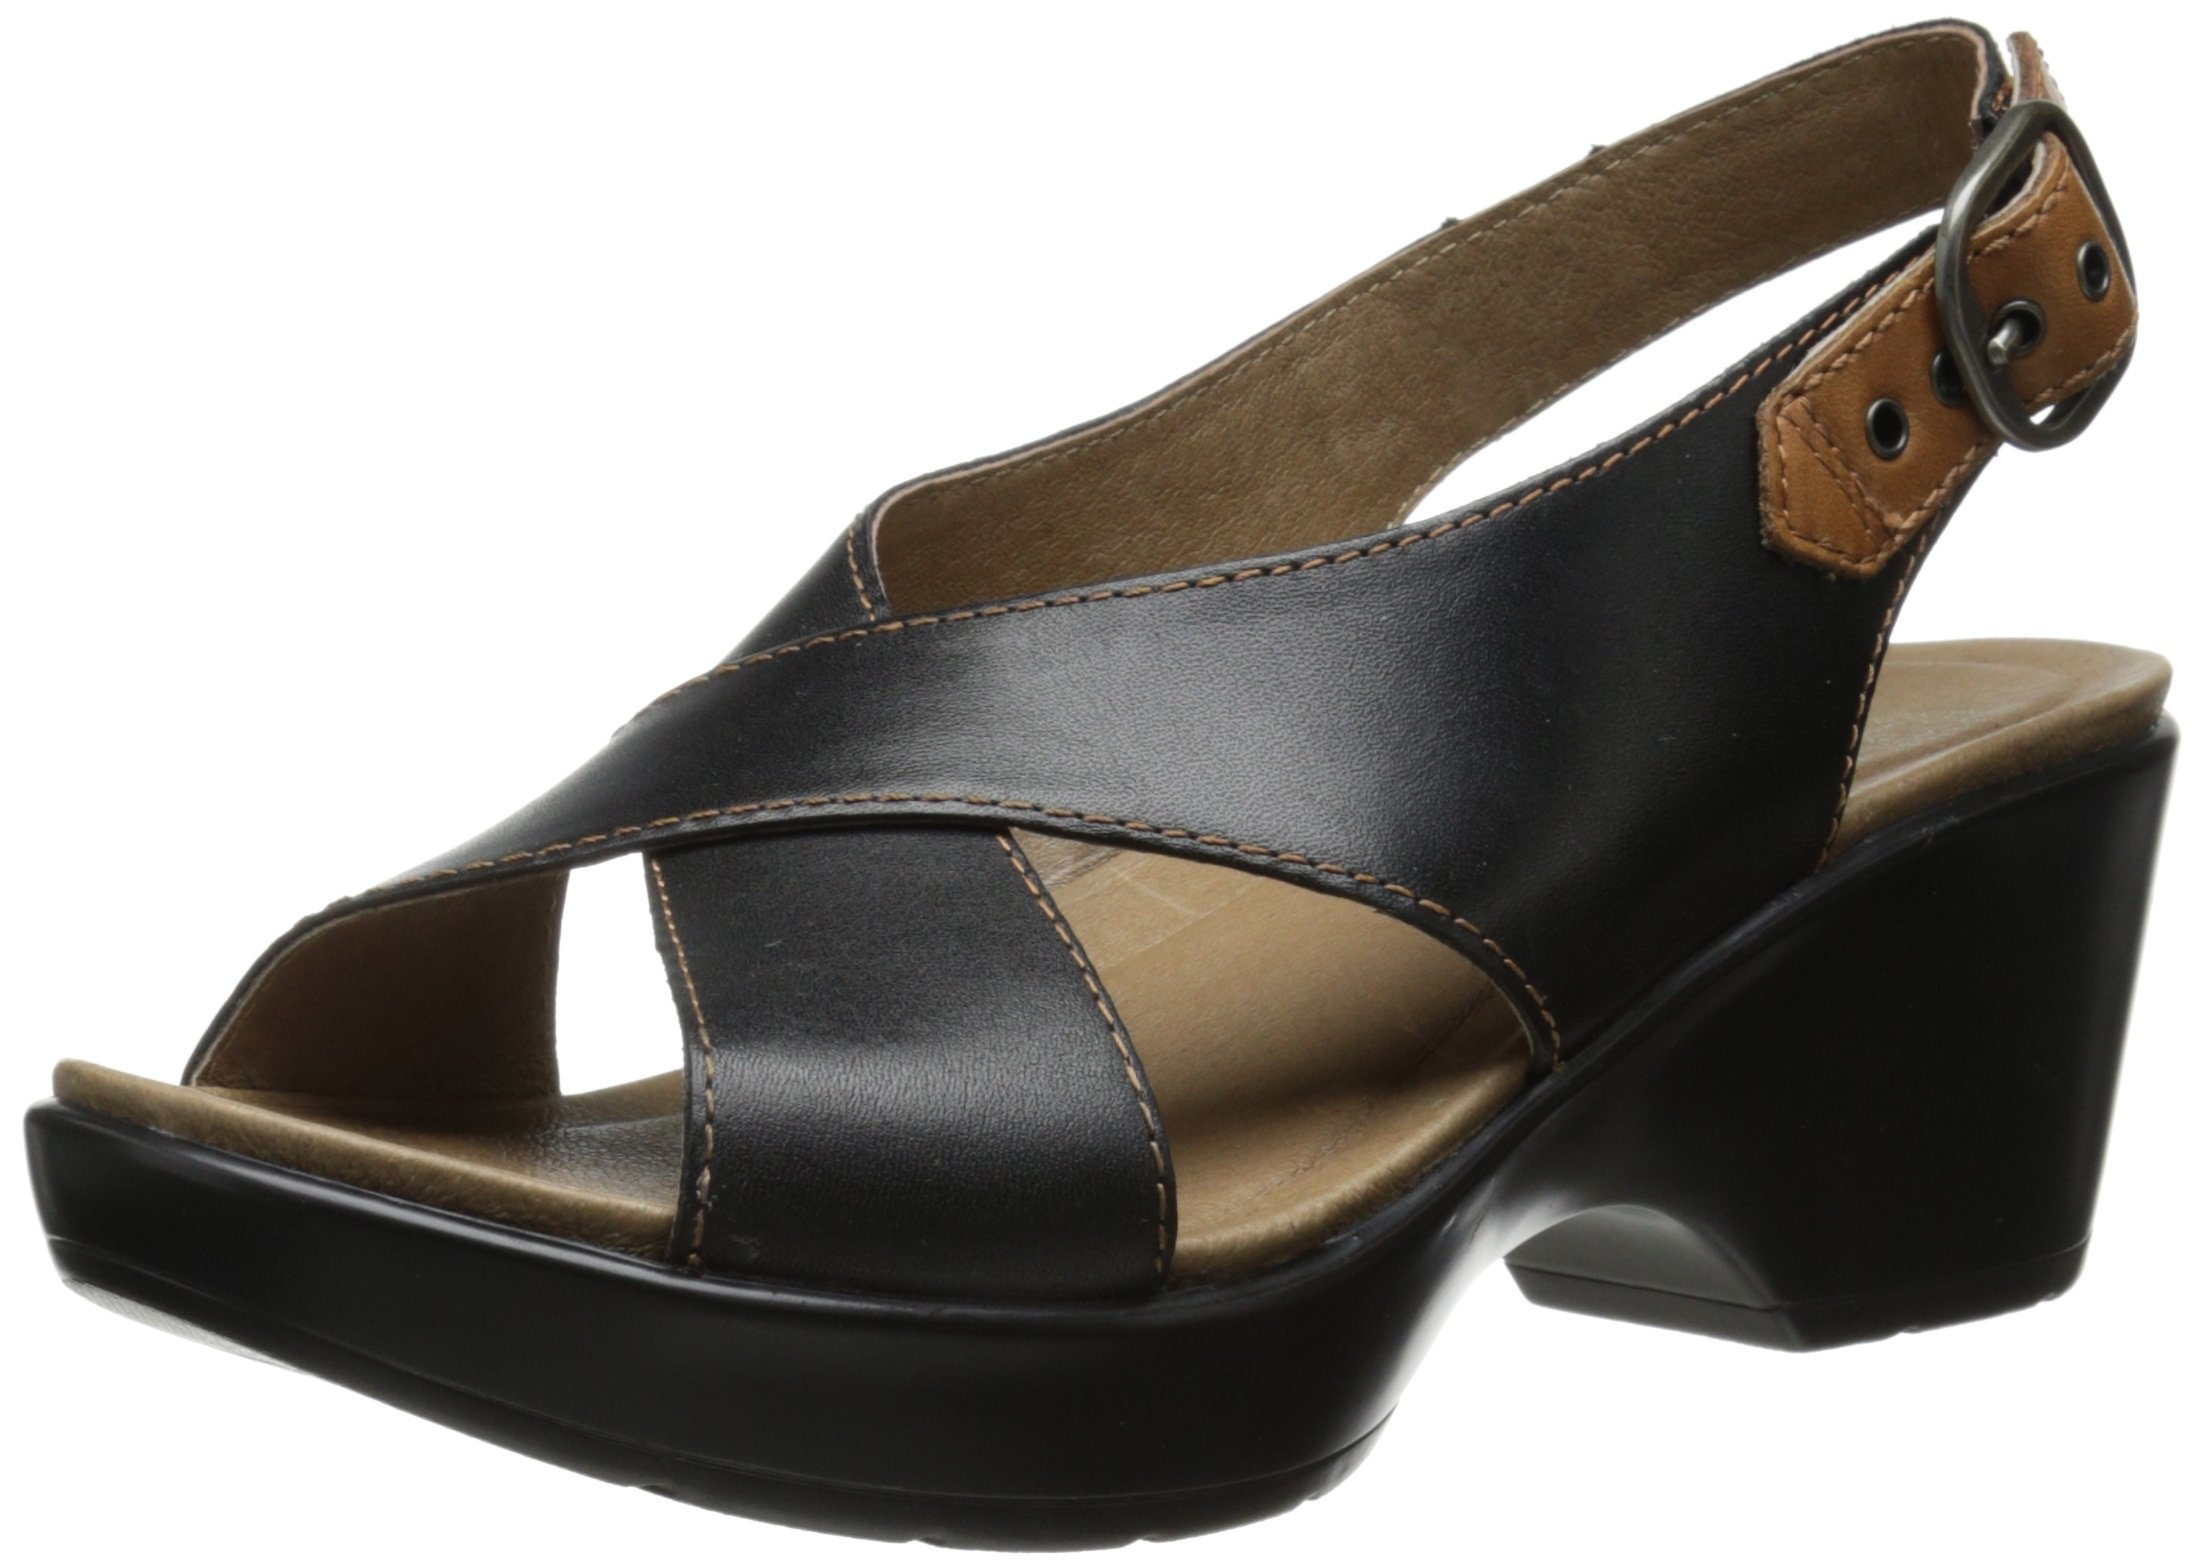 Dansko Women's Jacinda Dress Sandal, Black Full Grain, 40 EU/9.5-10 M US